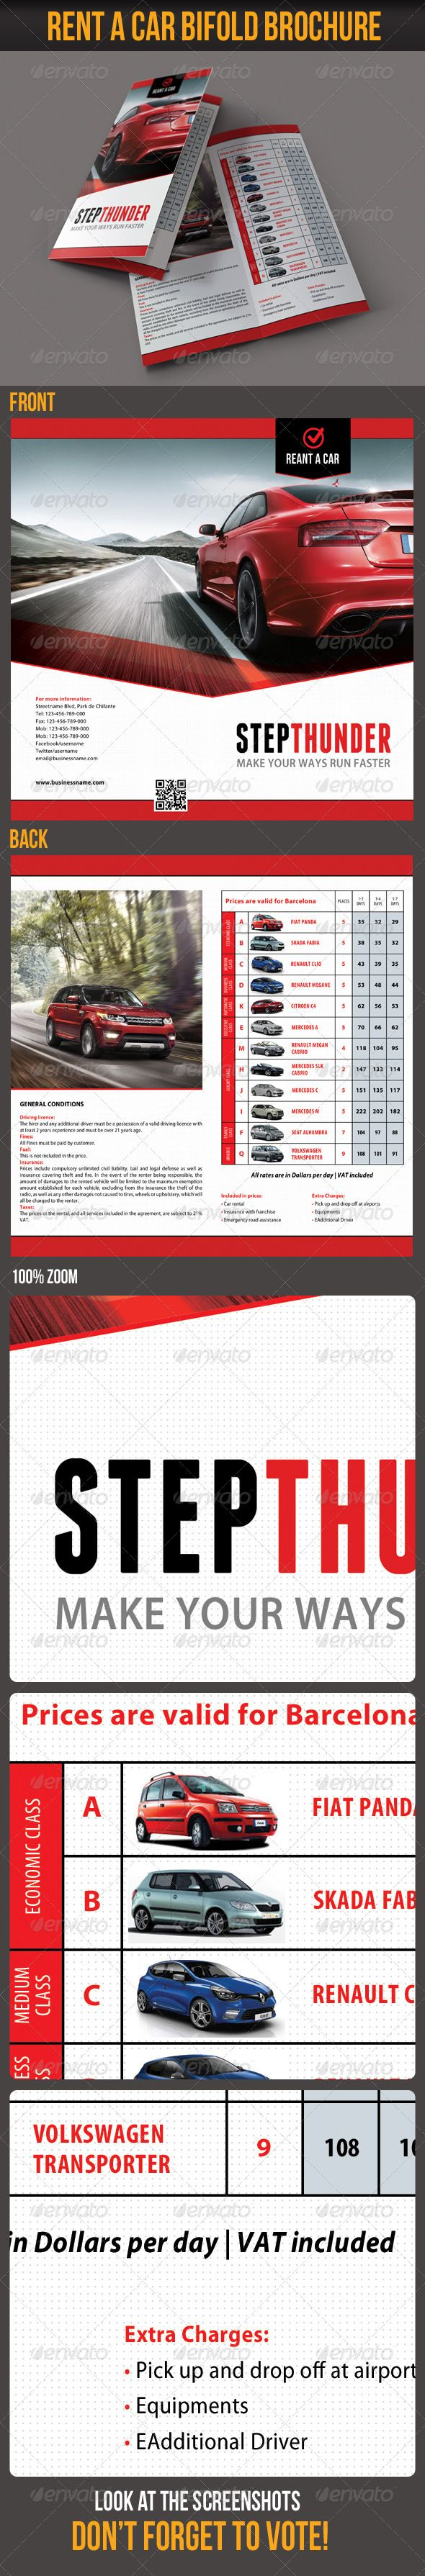 Rent A Car Bifold Brochure #GraphicRiver Rent A Car Bifold Brochure PSD TEMPLATE The Pack included: 2 PSD files Front and Back side PSD is well organized and Fully Layered Bleed Size: 220×220 mm (2598×2598 px) Standart Cut Size: 210×210 mm (2480×2480 px) CMYK 300 dpi Print Ready Readme file Preview Image not included in the download Readme file Fonts Required: Myriad Pro (system) Franchise: .dafont /franchise.font Bebas Neue: .dafont /bebas-neue.font Enjoy, and DON'T FORGET TO VOTE…